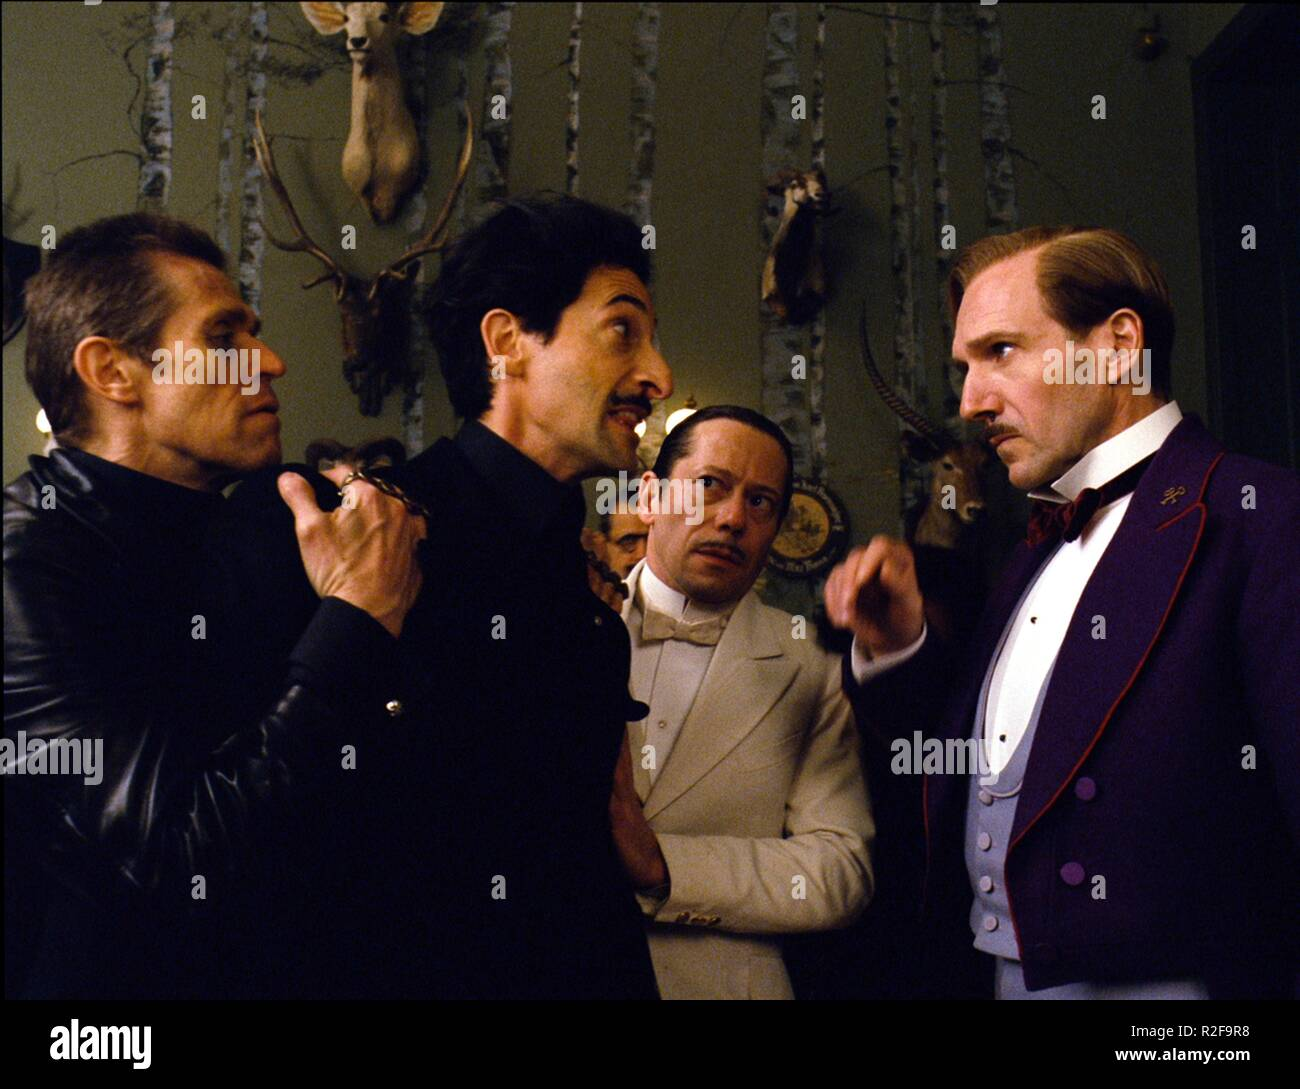 The Grand Budapest Hotel  Year : 2014 USA / Germany Director : Wes Anderson Willem Dafoe, Adrian Brody, Mathieu Amalric, Ralph Fiennes - Stock Image